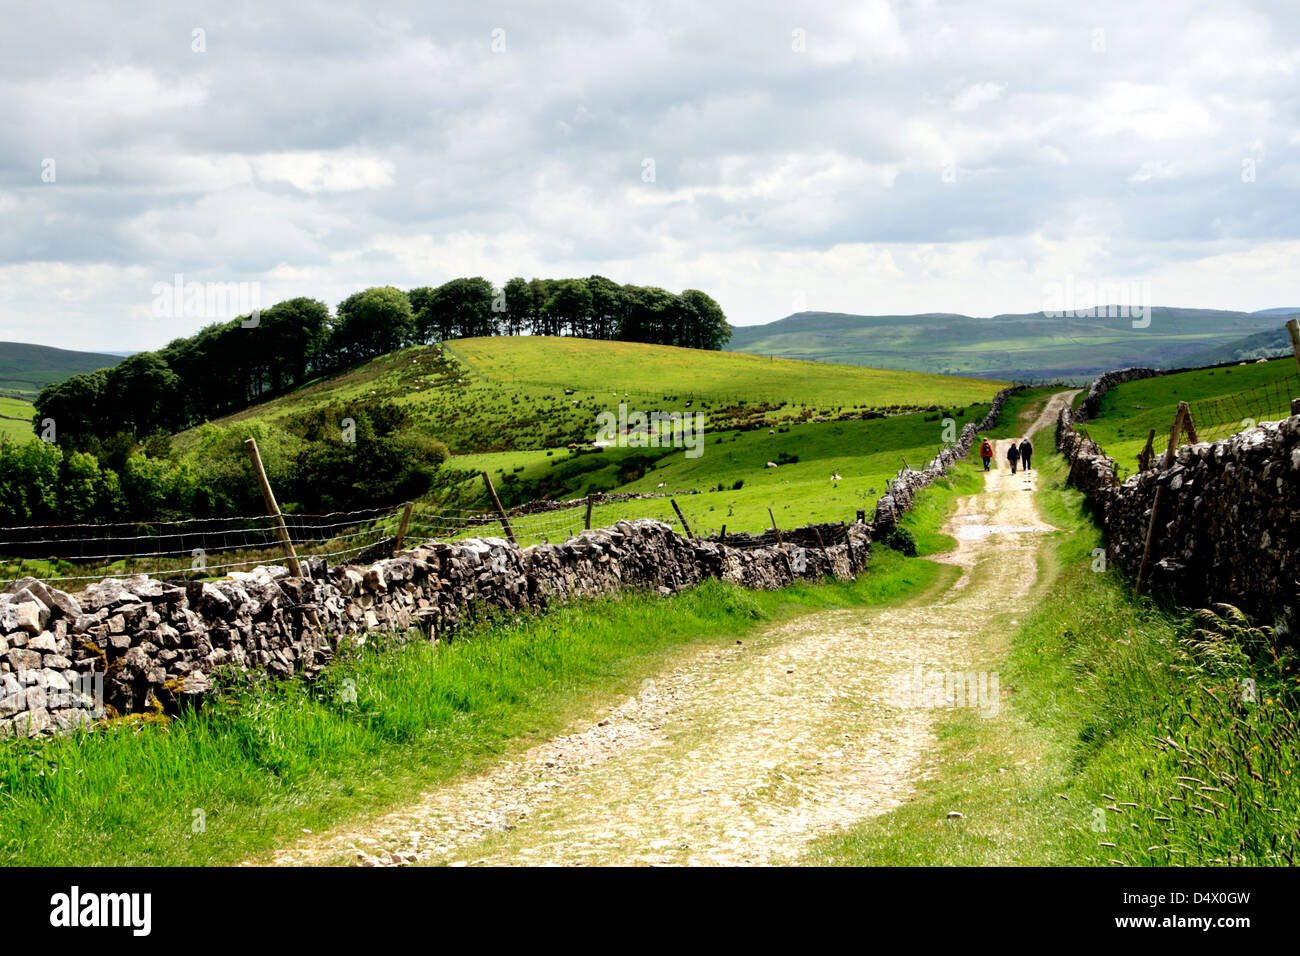 A footpath leading down to Horton in Ribblesdale in the Yorkshire Dales National Park, England - Stock Image